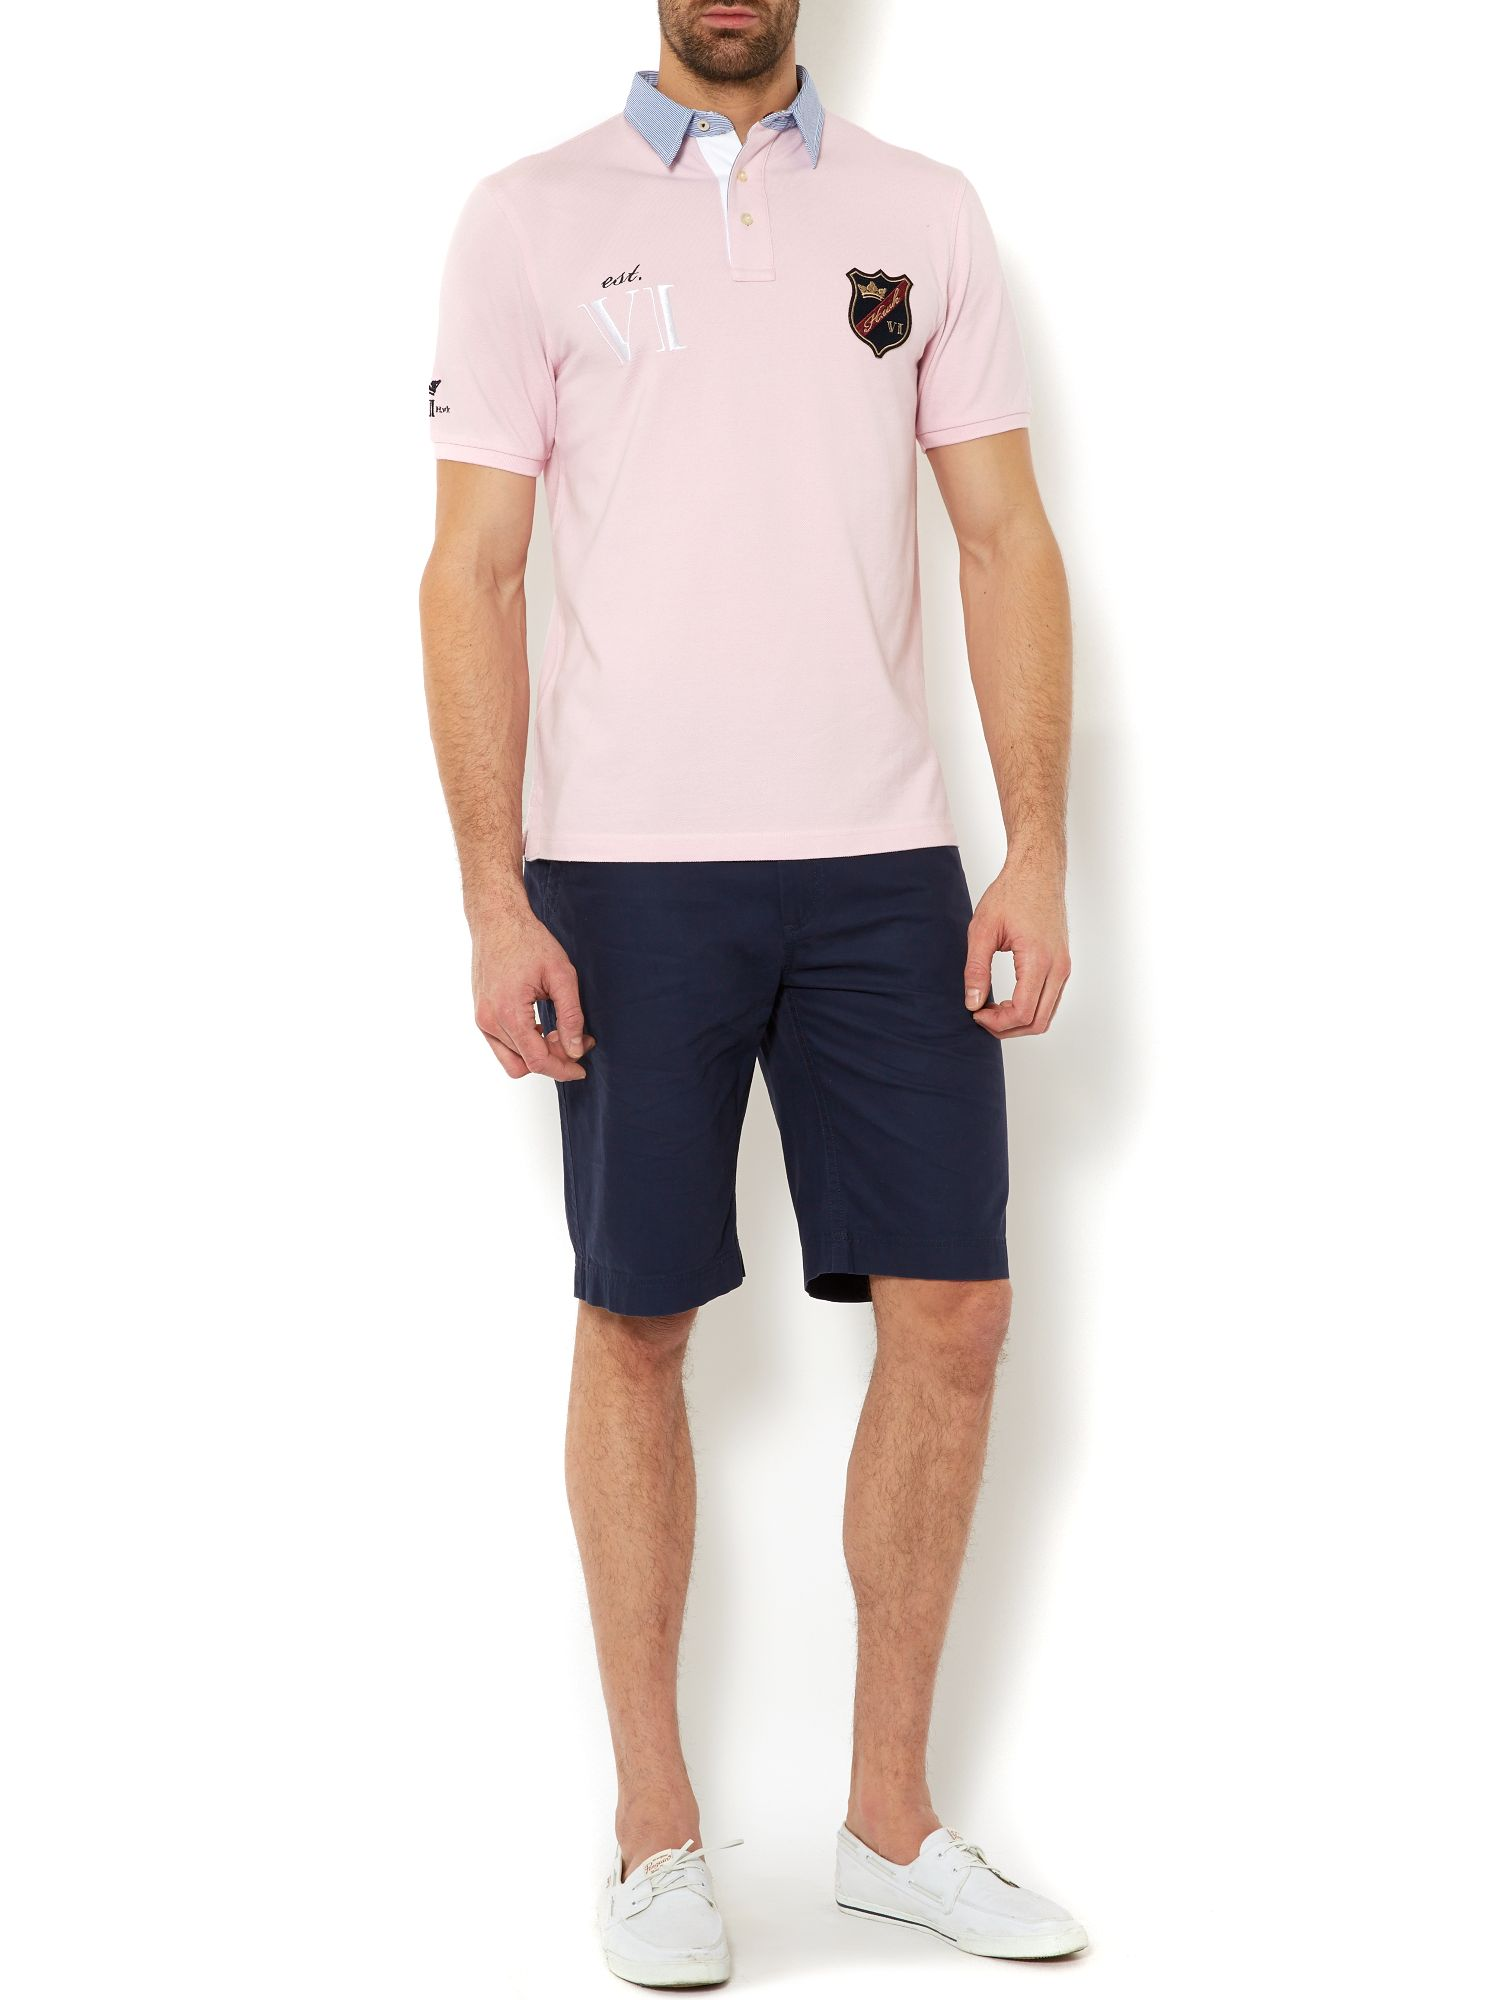 Brigg Pique Short Sleeved Jersey